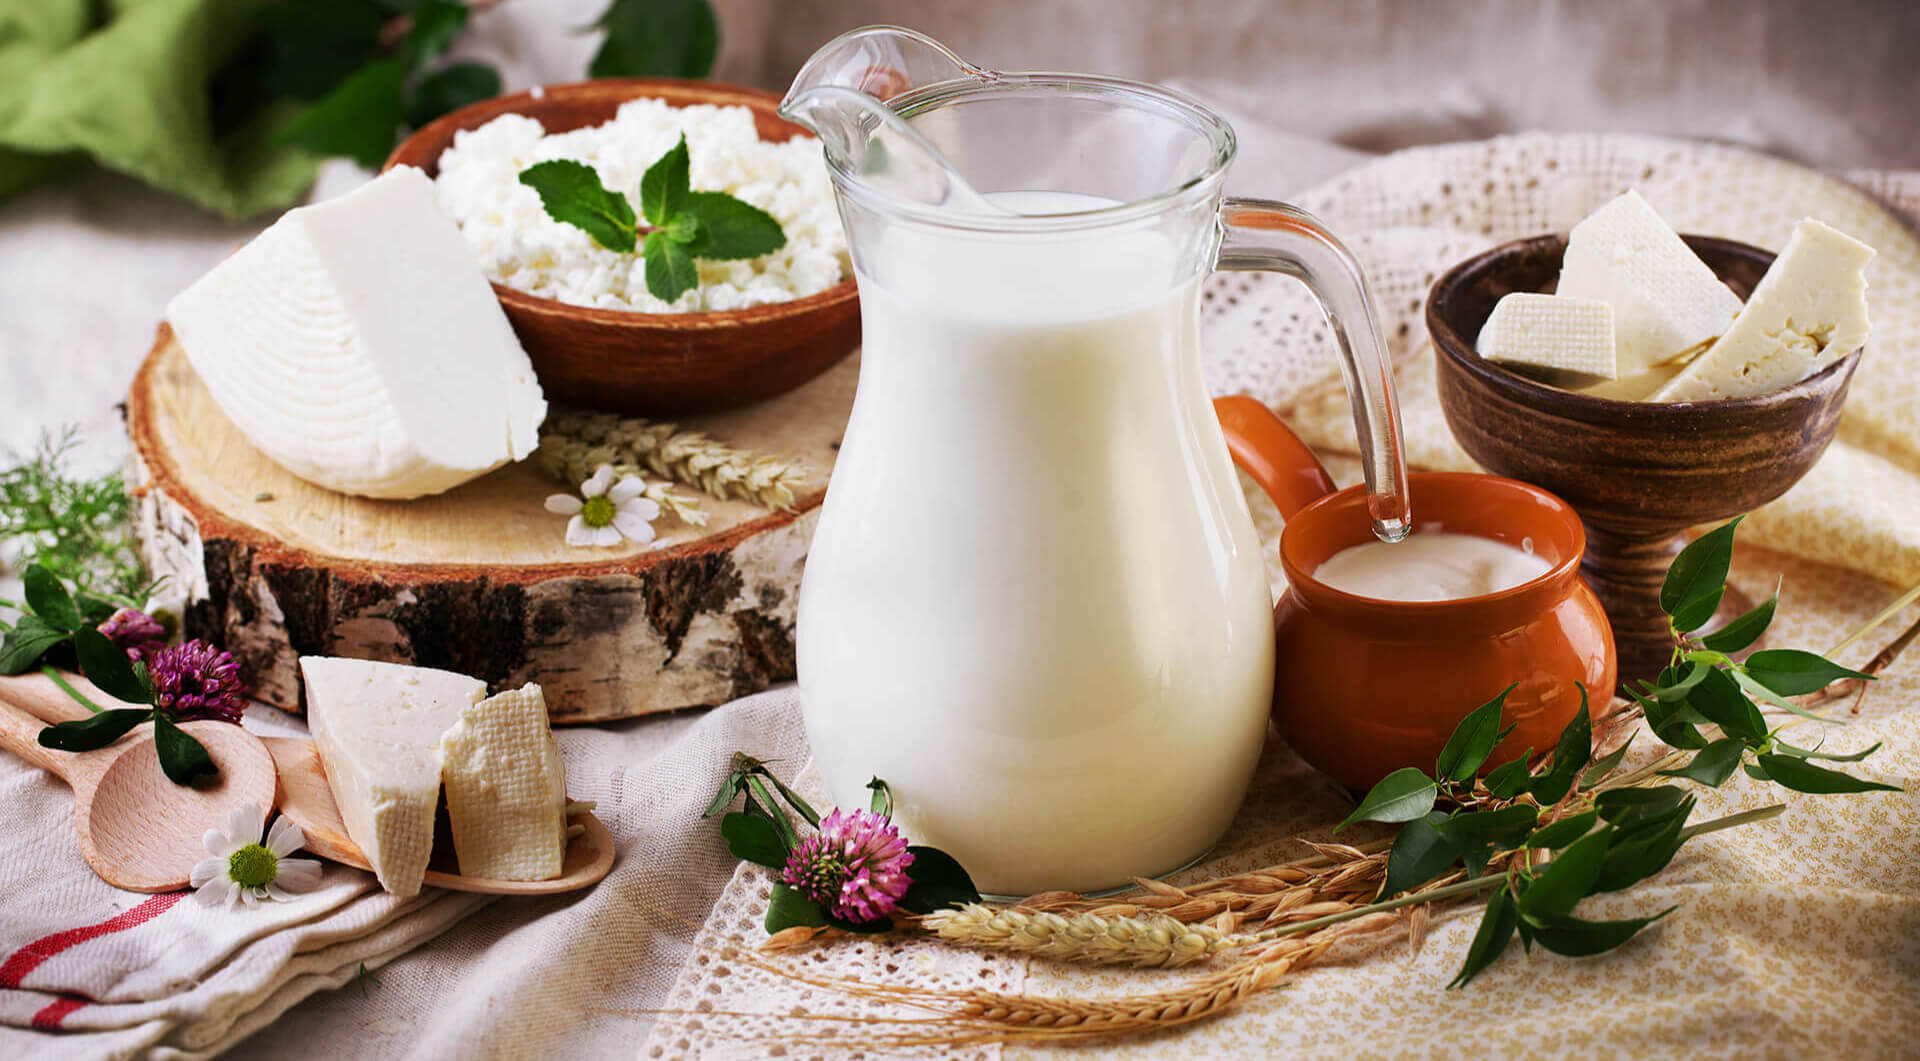 ingredients solution provider, technical ingredients supplier, healthier innovation in dairy, yoghurt, trends and new launches in dairy industry